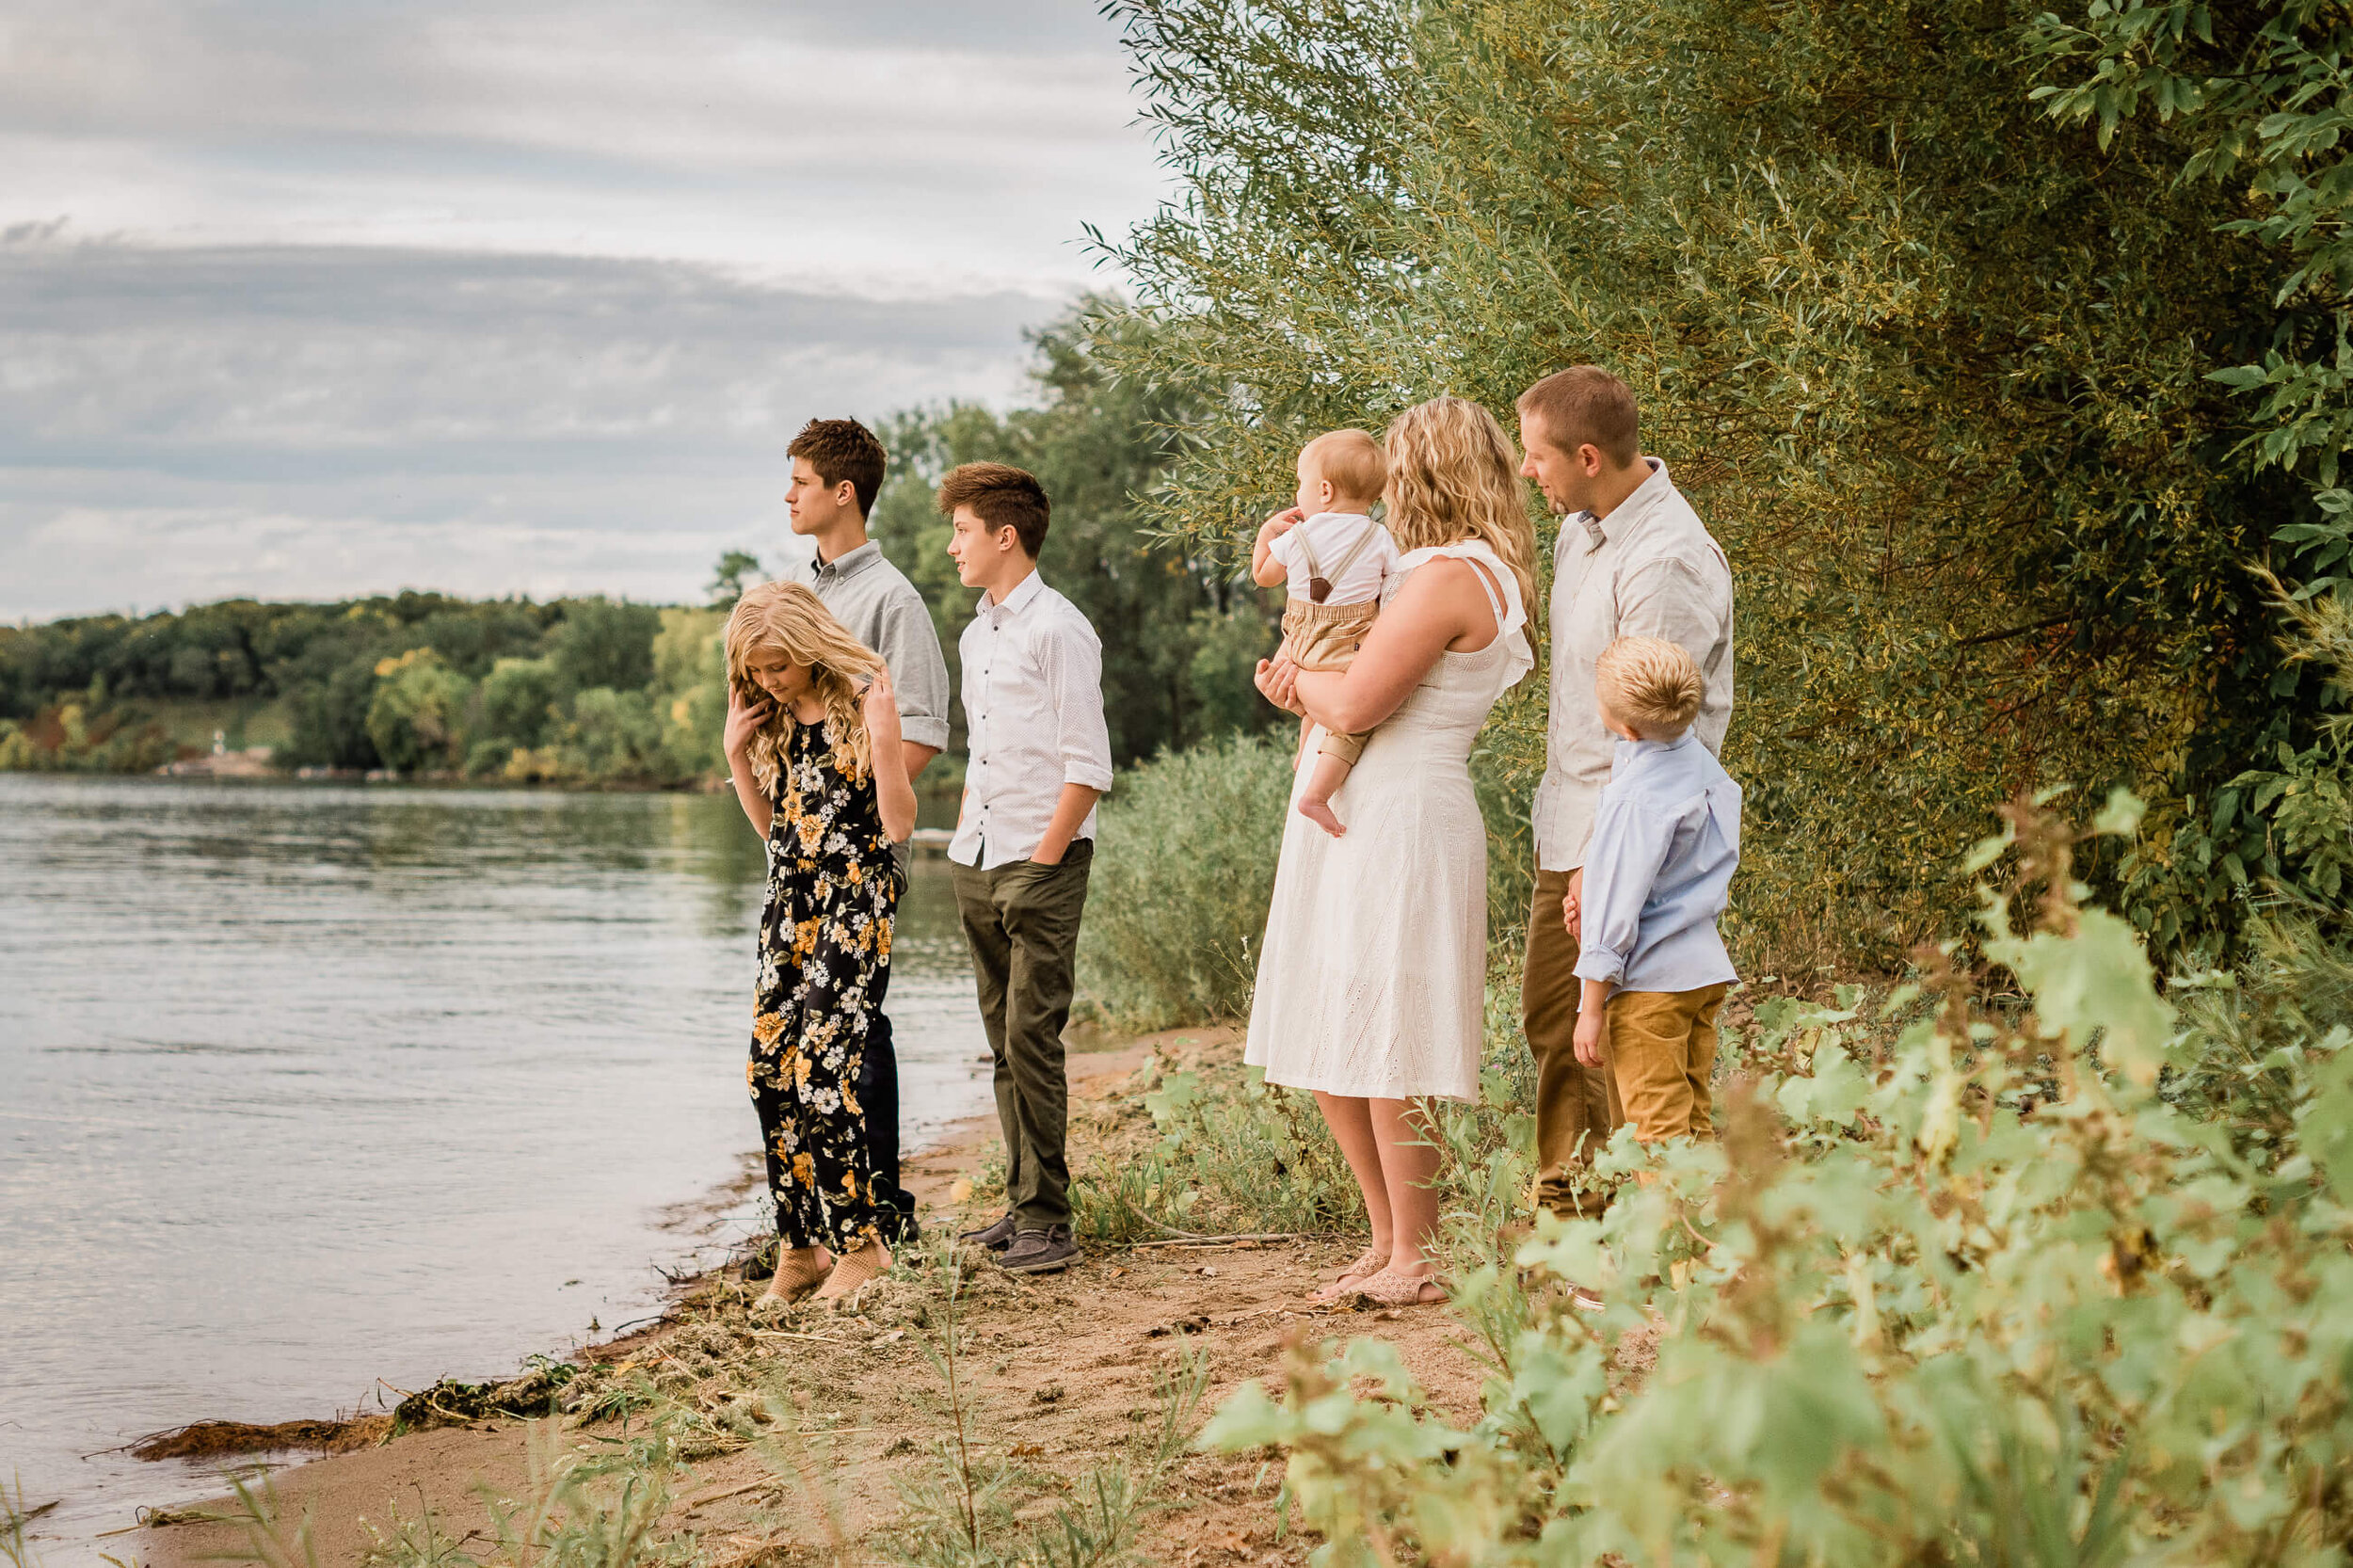 Amber_Doll_Photography_Park_Rapids_Minnesota_Family_Photographer_Family_Lifestyle_Portrait_Session_Park_Rapids_Menahga_Wadena_Perham_Bemidji_Brainerd-_Lifestyle_Portrait_Session_Park_Rapids_Menahga_Wadena_Perham_Bemidji_Brainerd-08070.jpg